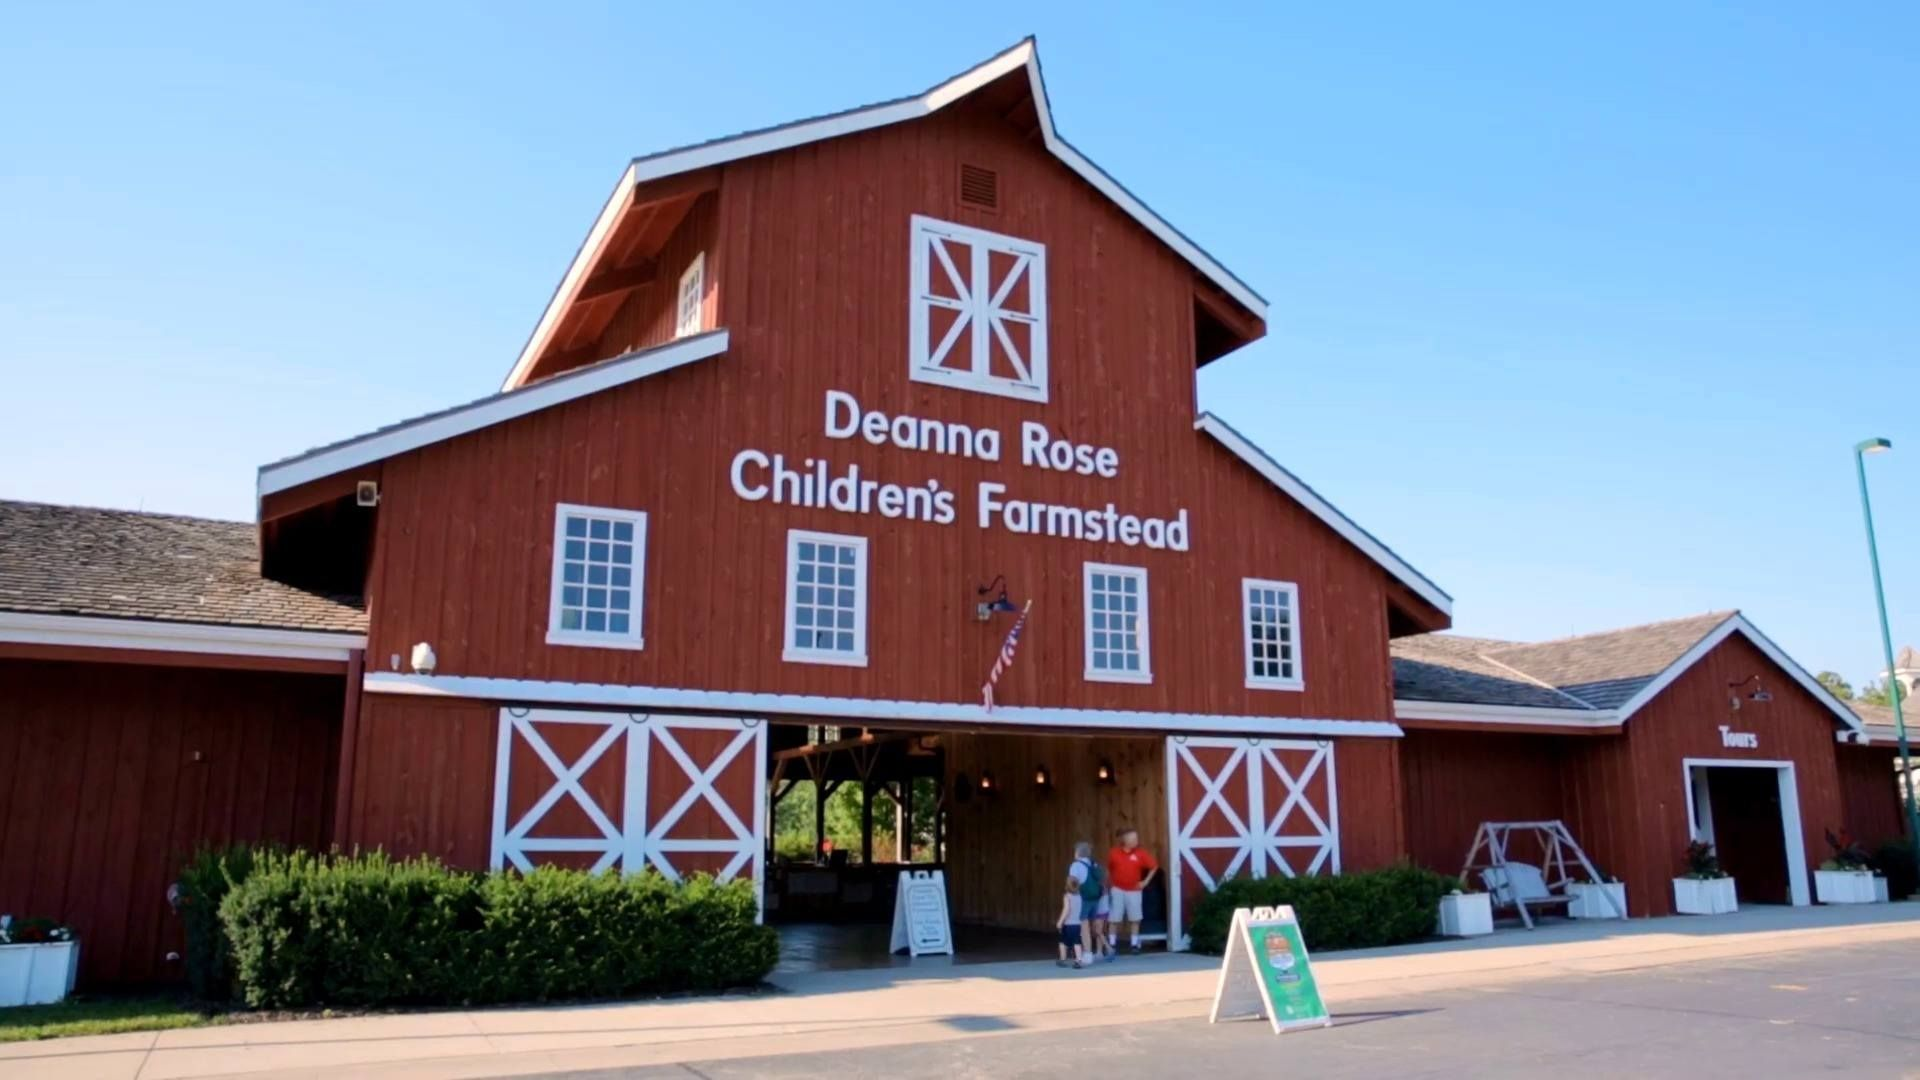 A Delightful Day At Deanna Rose Children S Farmstead In Overland Park Kansas Overland Park Kansas Farmstead Vacations In The Us